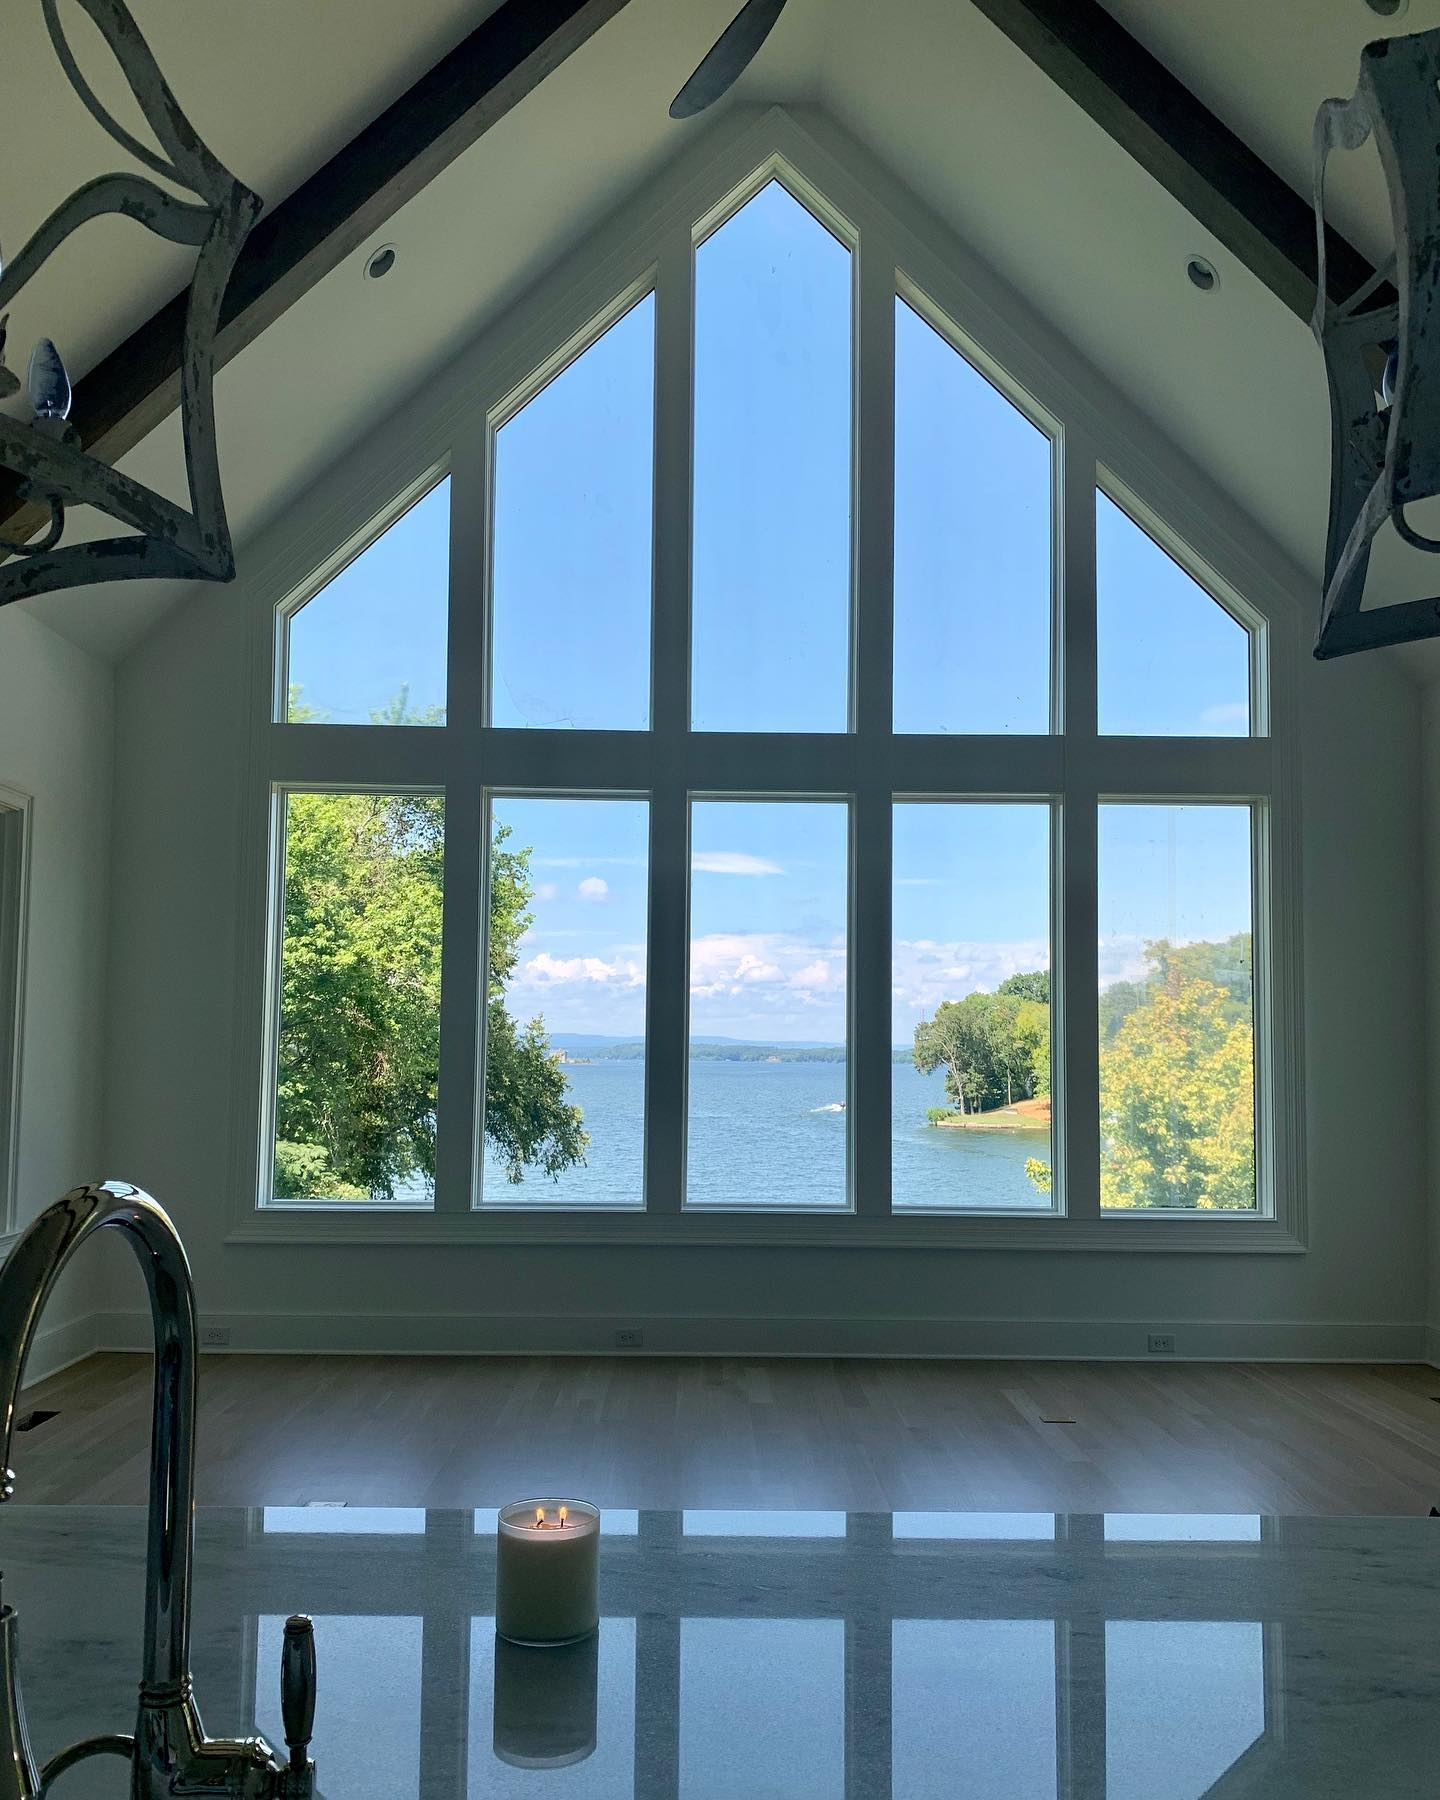 Custom window wall frames the beautiful outdoor view